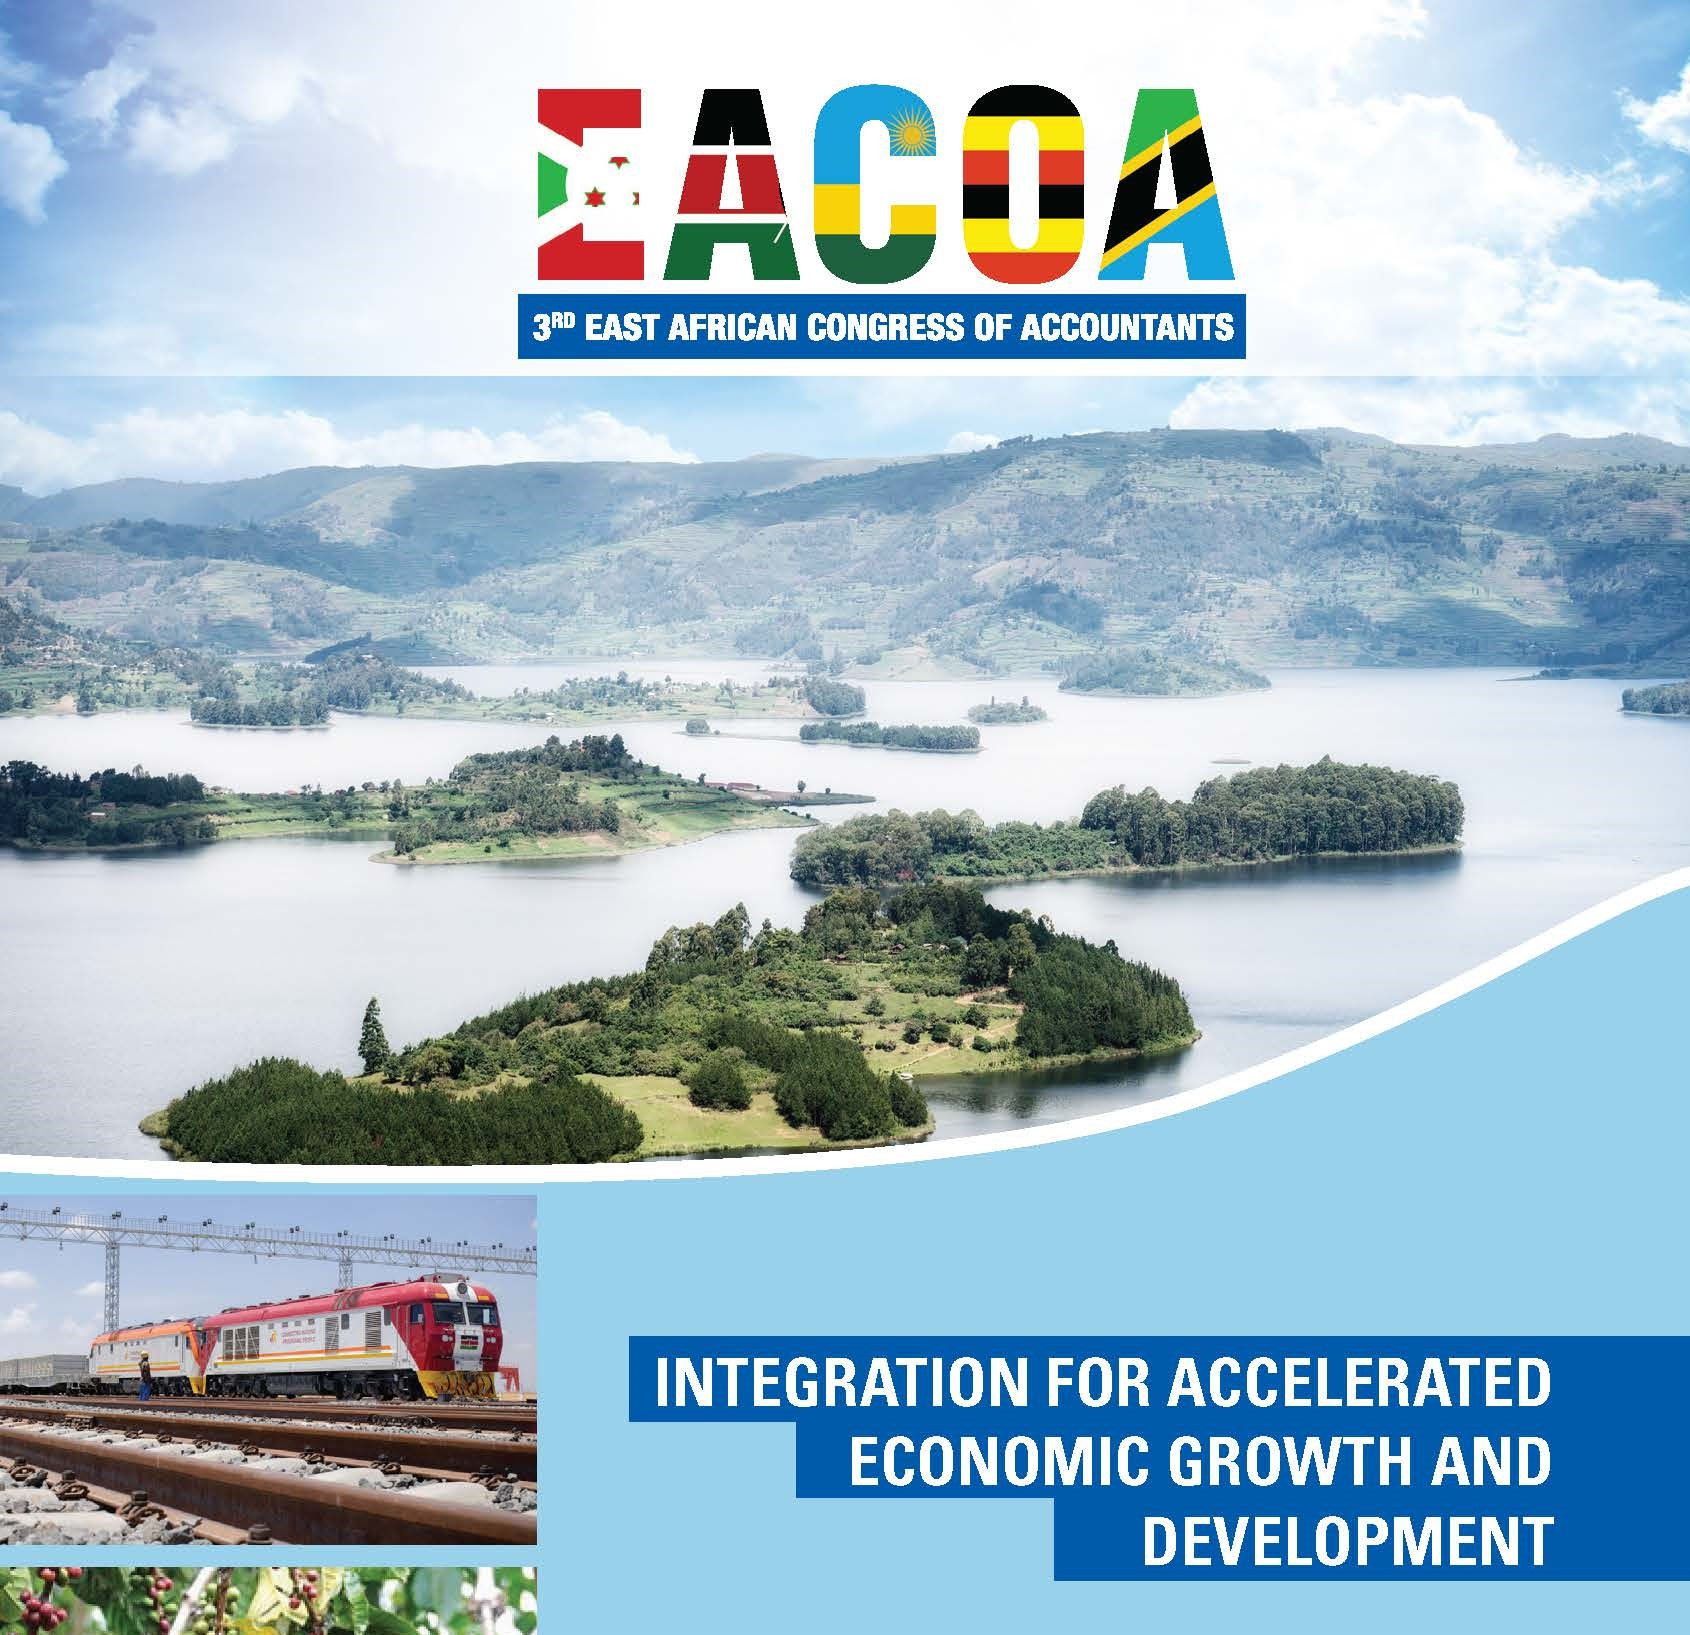 EACOA2021 -14th -16th April 2021